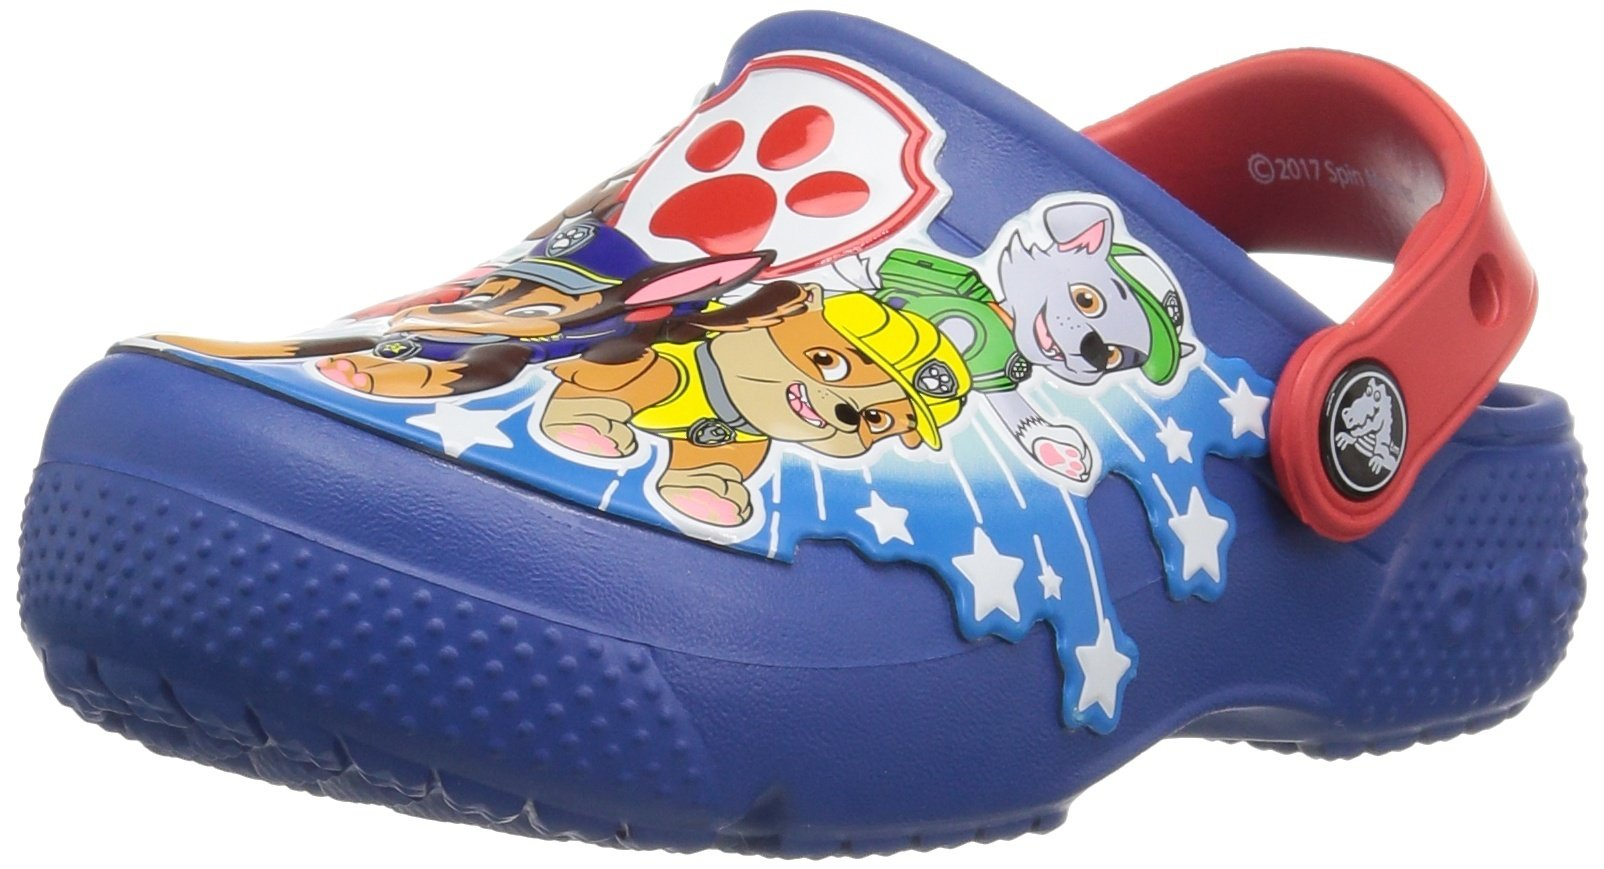 crocs 205180-4GX : Boys' Crocs fun lab Paw patrol K Clog Blue Jean by Crocs